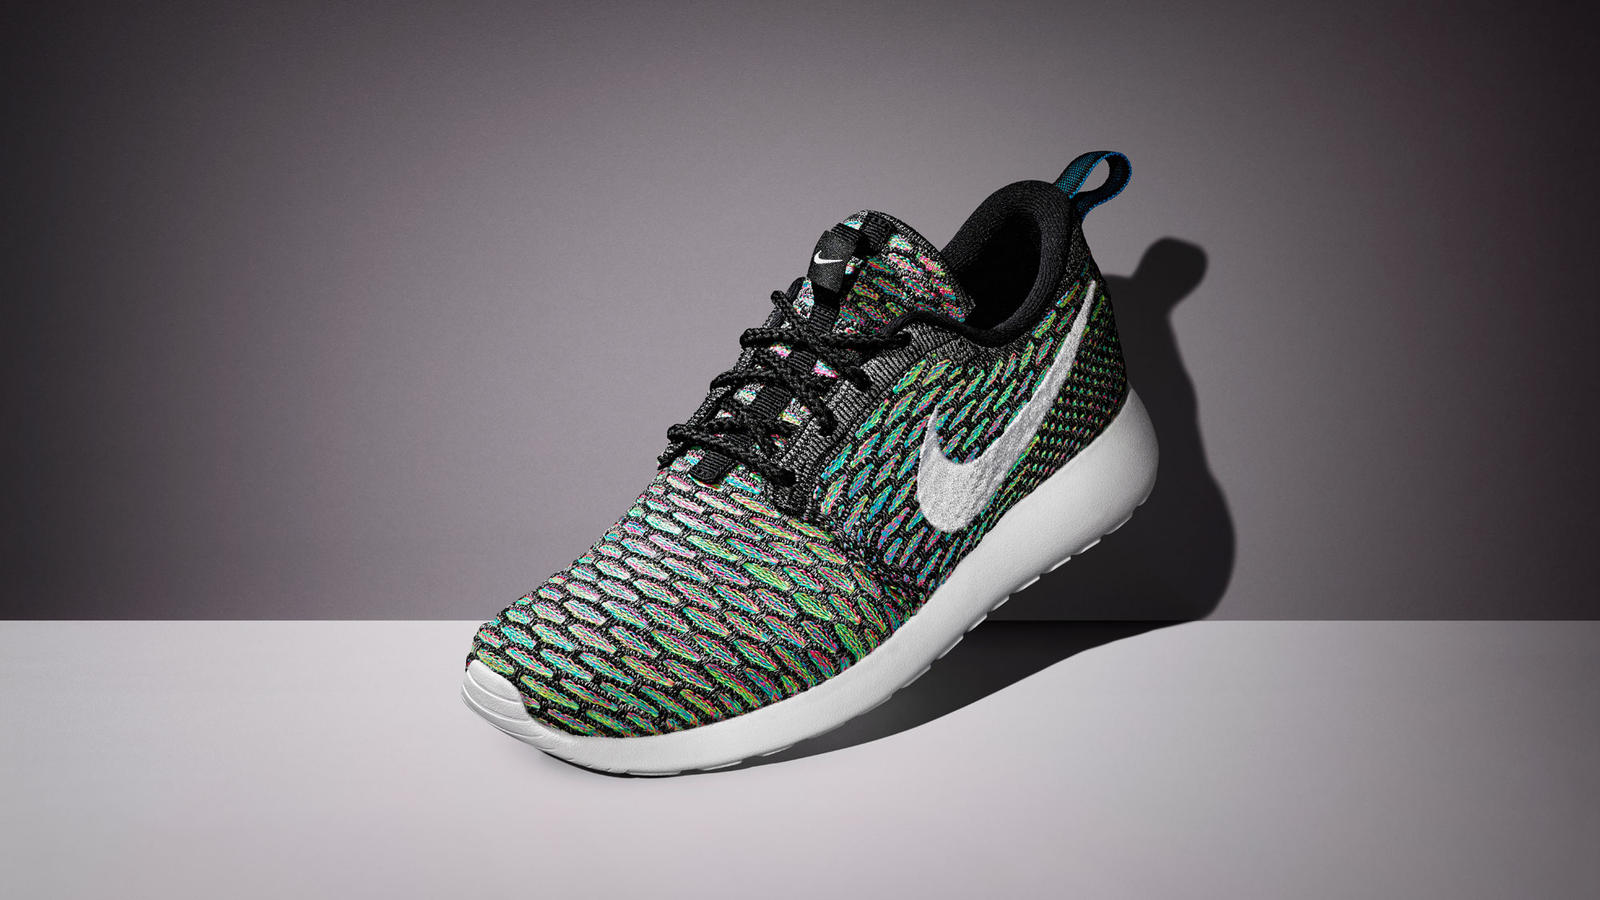 Sp15_NSW_Roshe_Flyknit_W_Grey_White_06_original_porto (18)